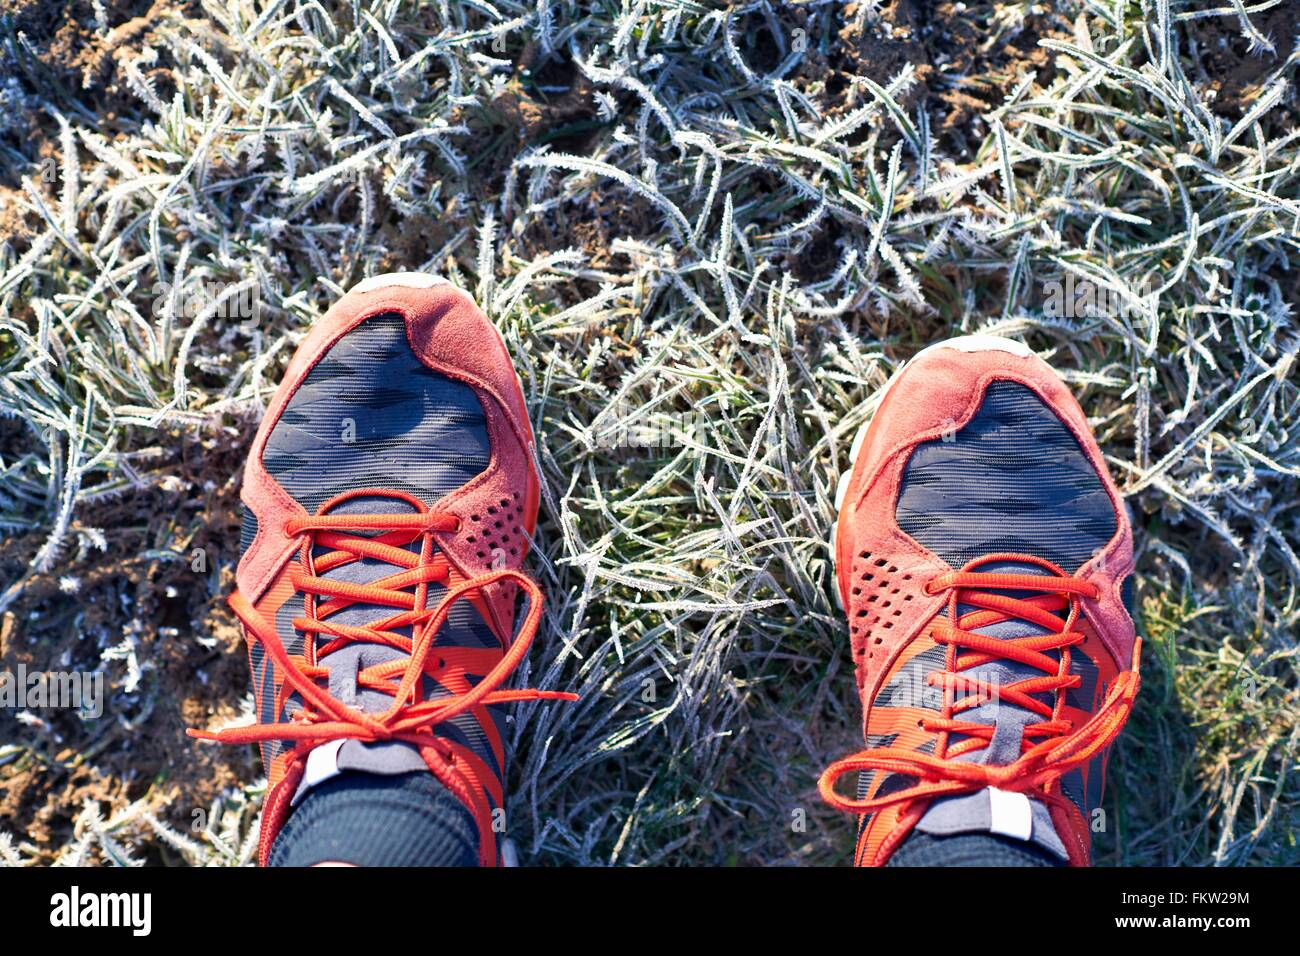 Overhead view of runners feet wearing running shoes on frosty grass - Stock Image